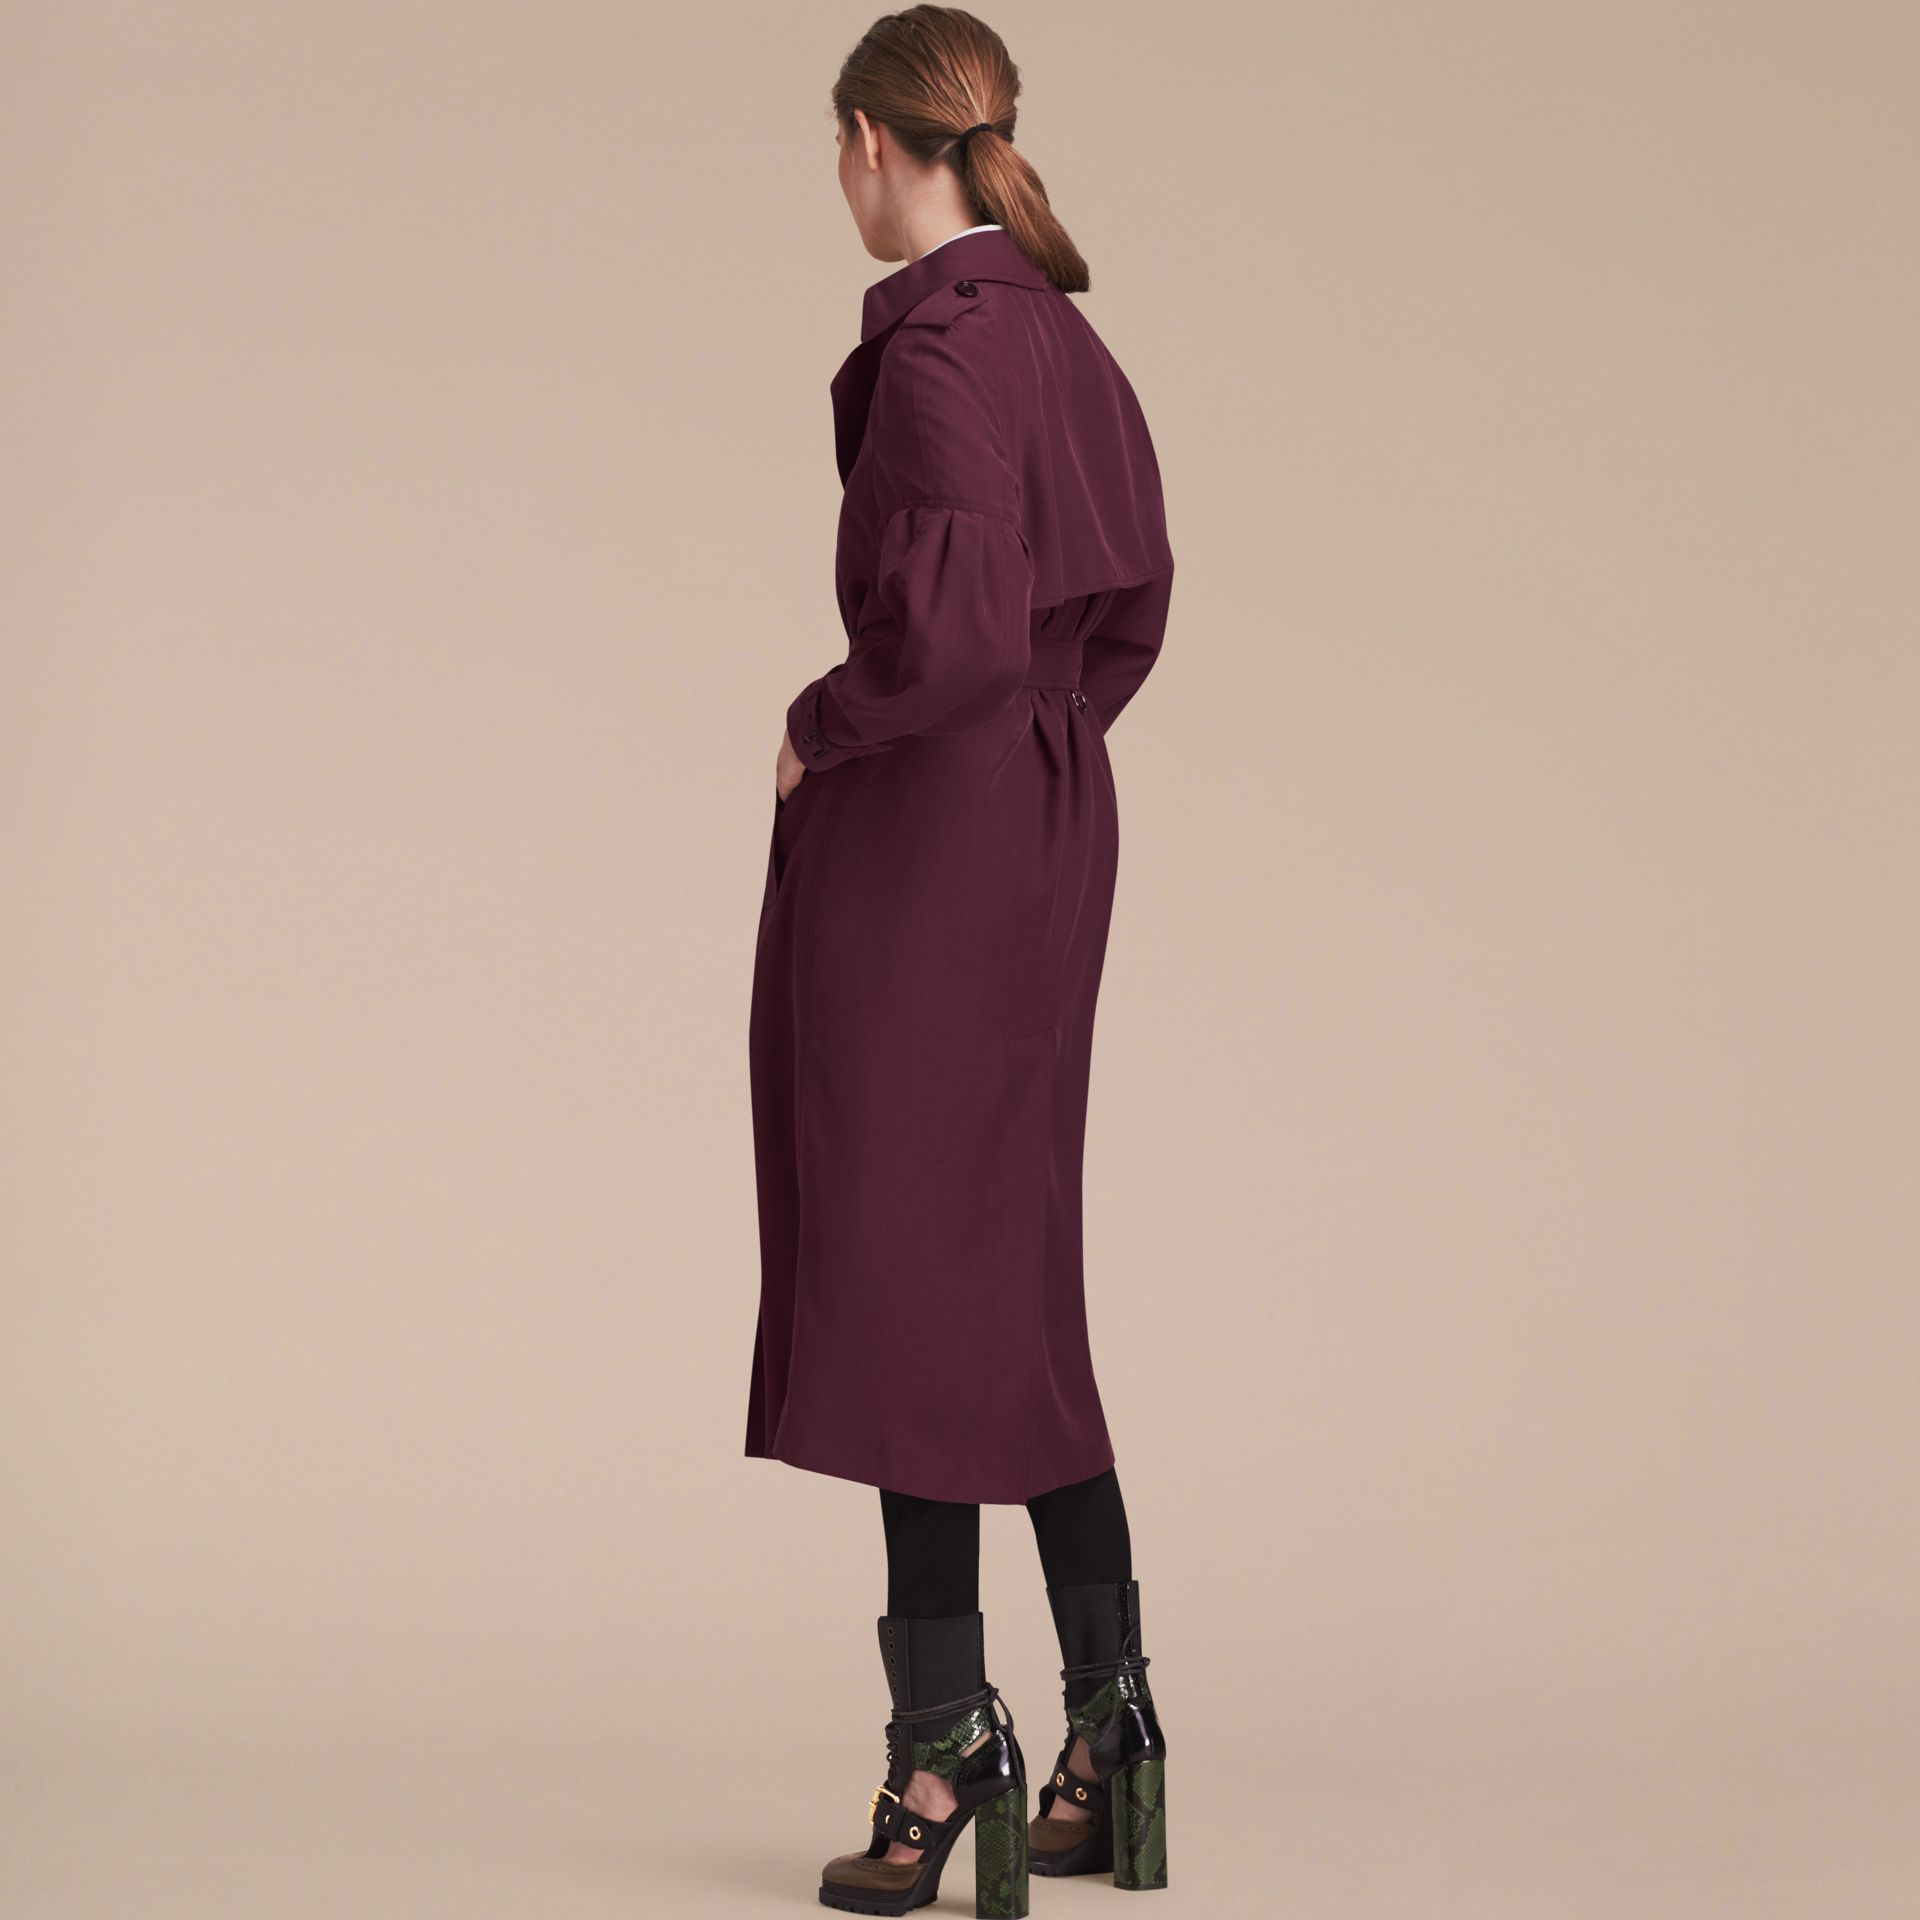 Burgundy Oversize Silk Trench Coat with Puff Sleeves Burgundy - gallery image 3